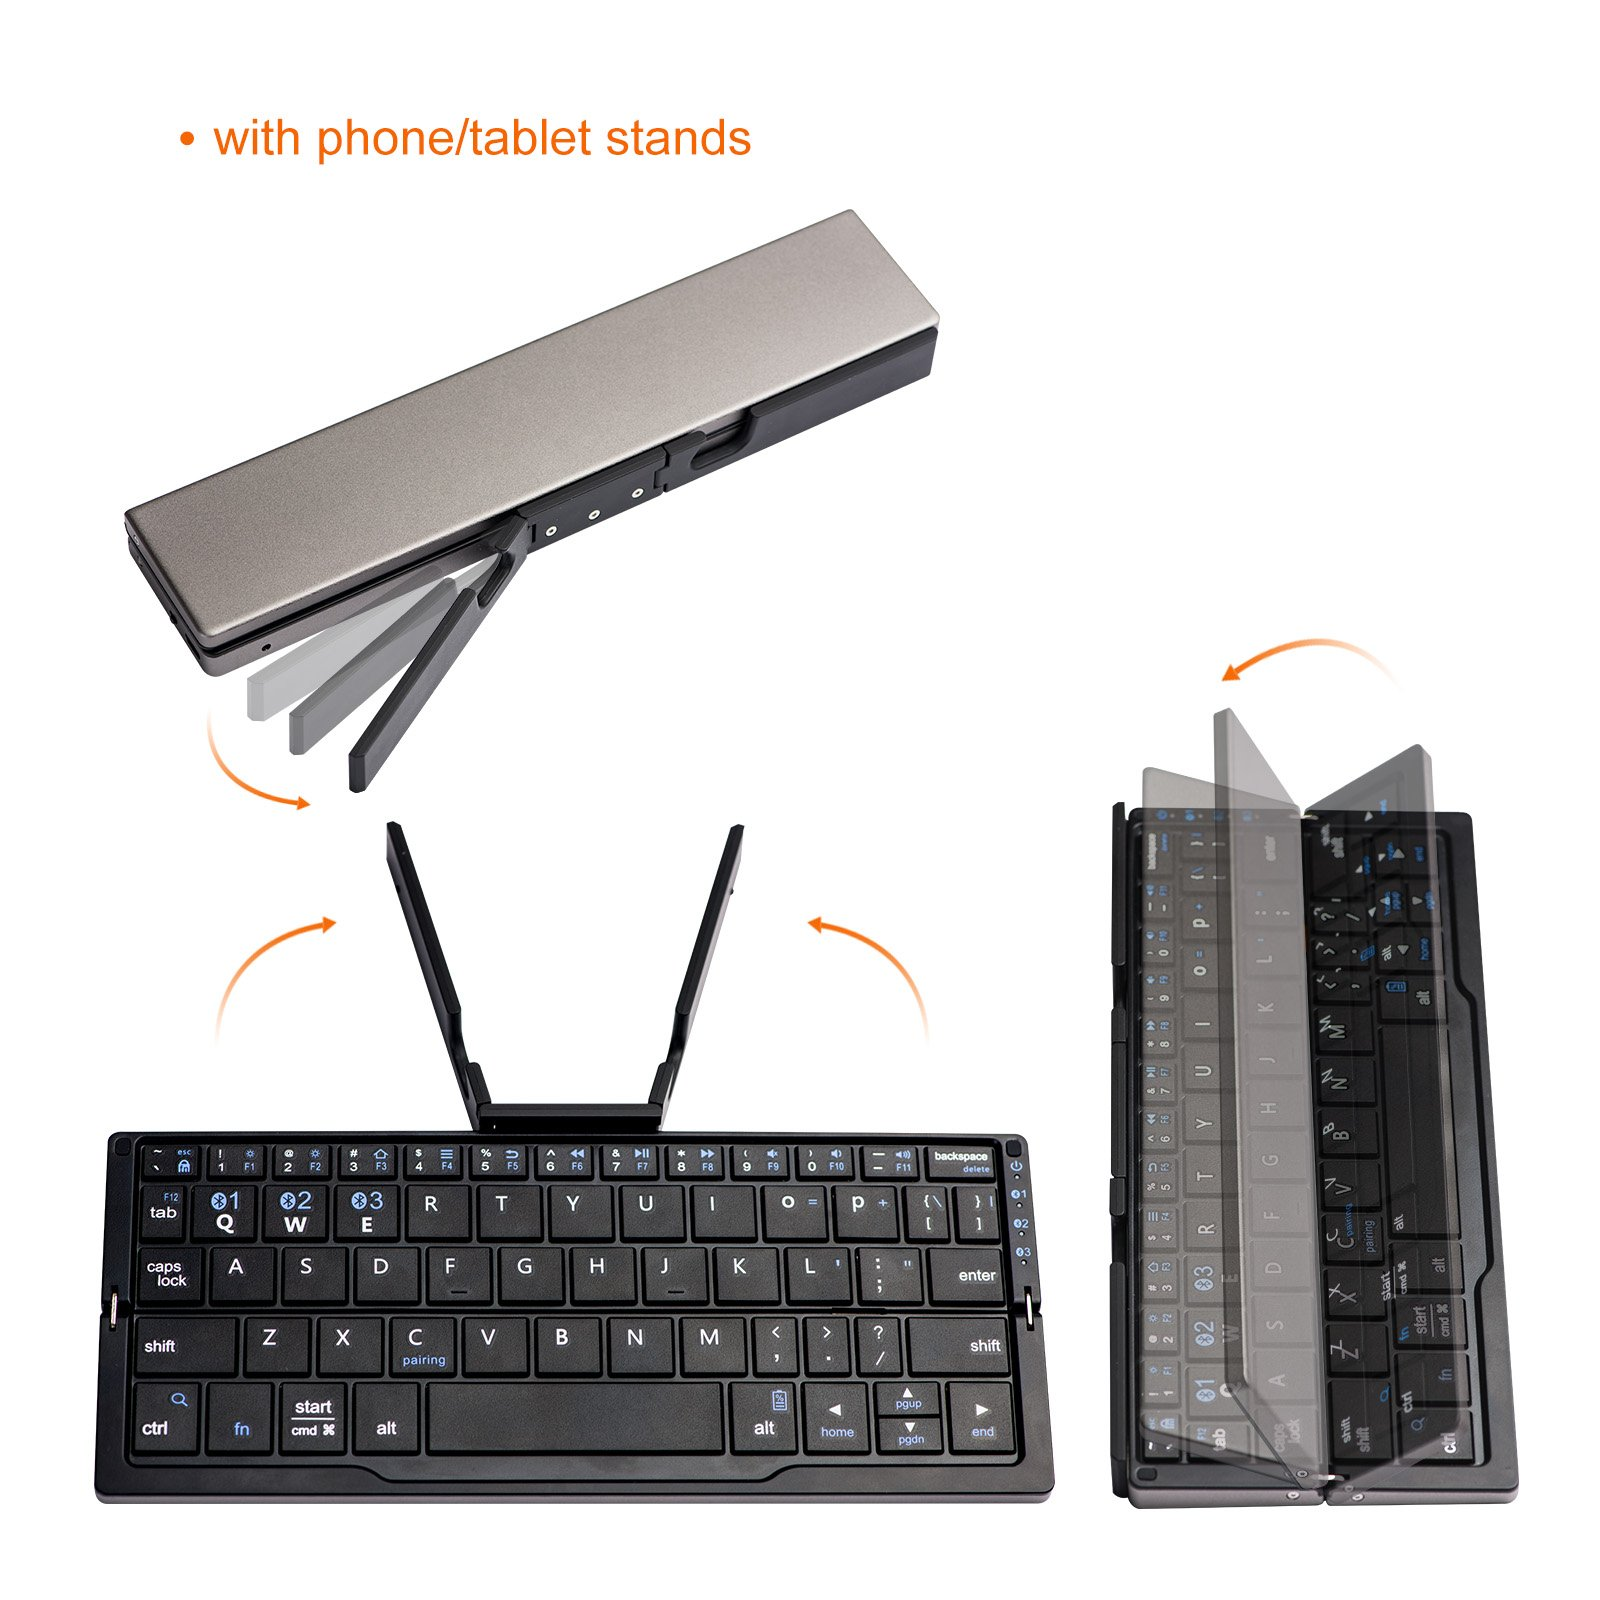 Pocket Size Bluetooth Keybaord, LinDon-Tech Rechargeable Portable Foldable Mini Wireless Keyboard with Stand for IOS Android Windows, Aluminum Alloy (Foldable with Stand)